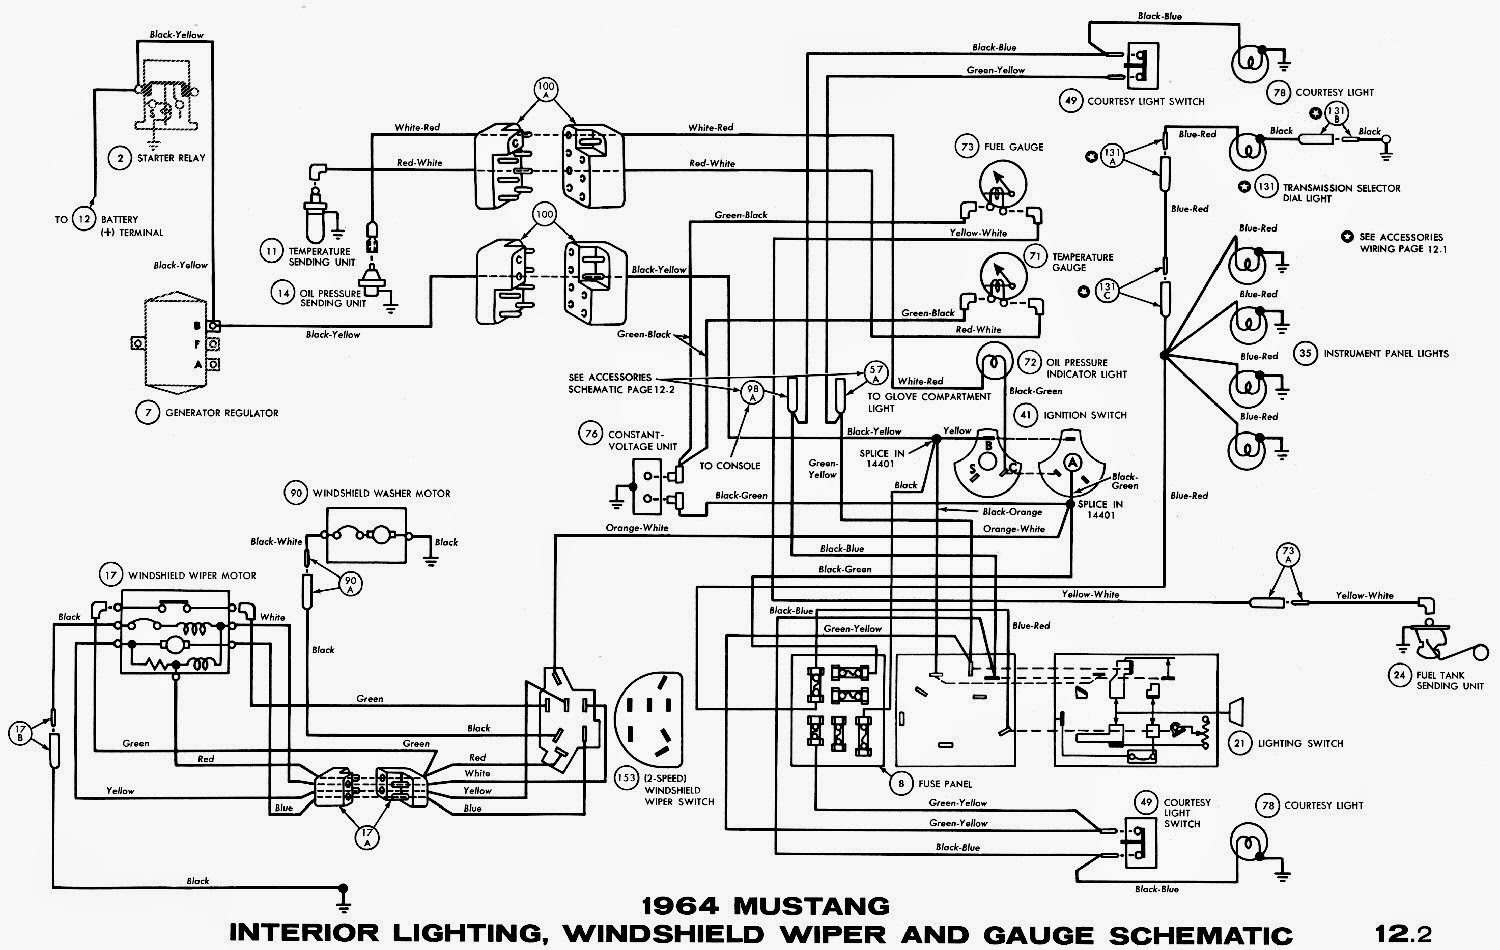 2015 Mustang Wiring Diagram : 27 Wiring Diagram Images